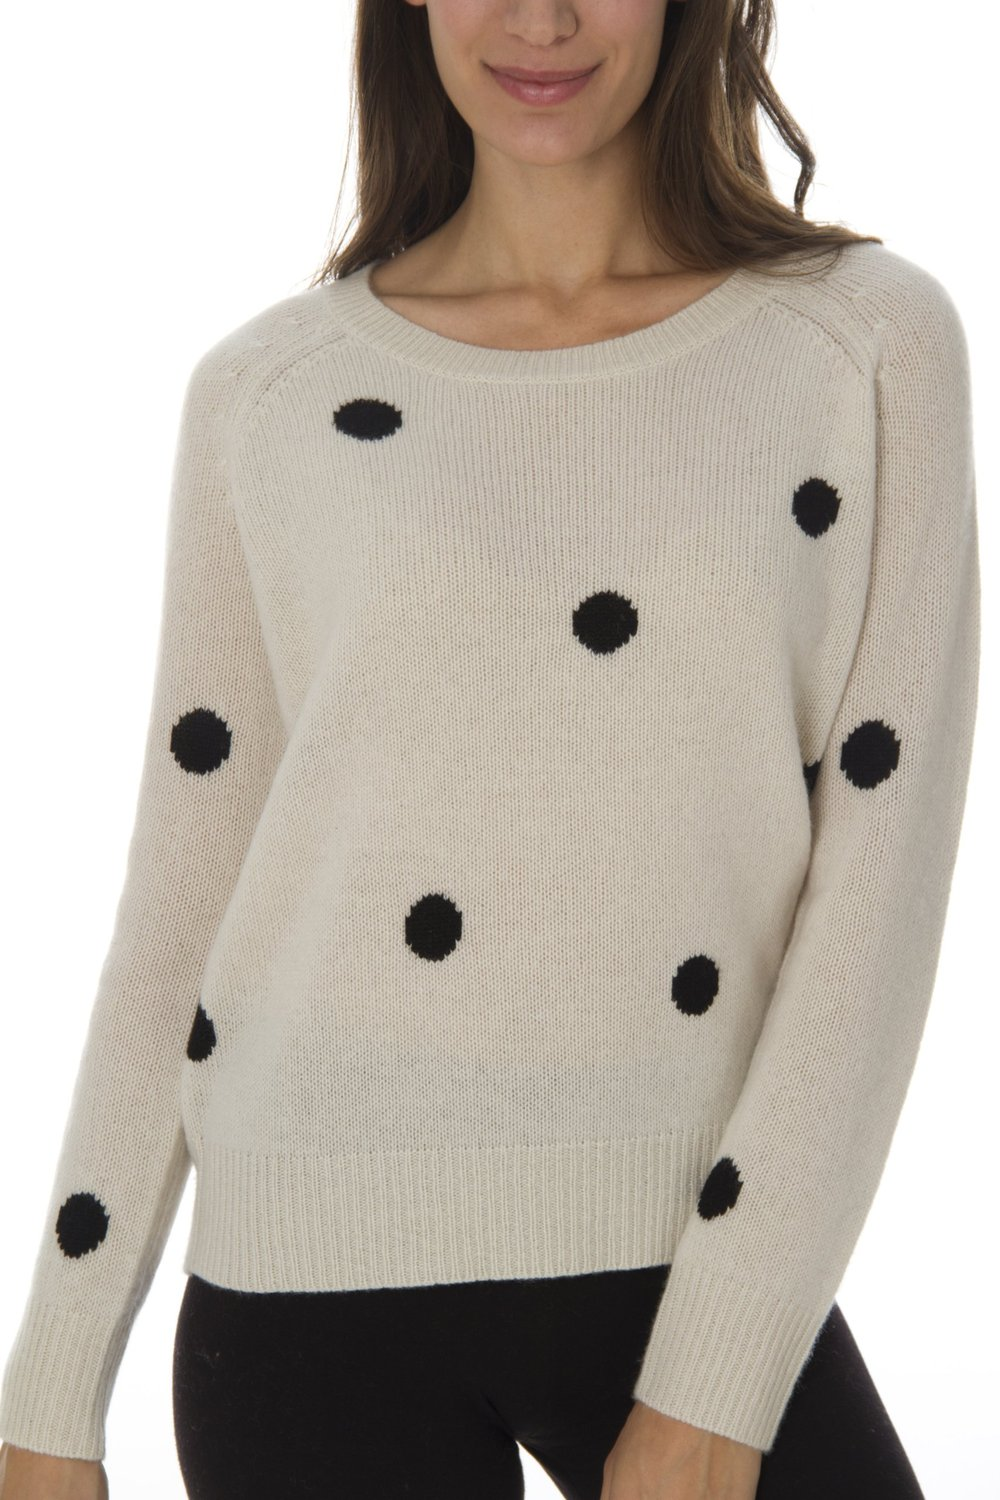 Women's 100% Cashmere Polka Dot Pullover - Small at Amazon Women's Clothing store: